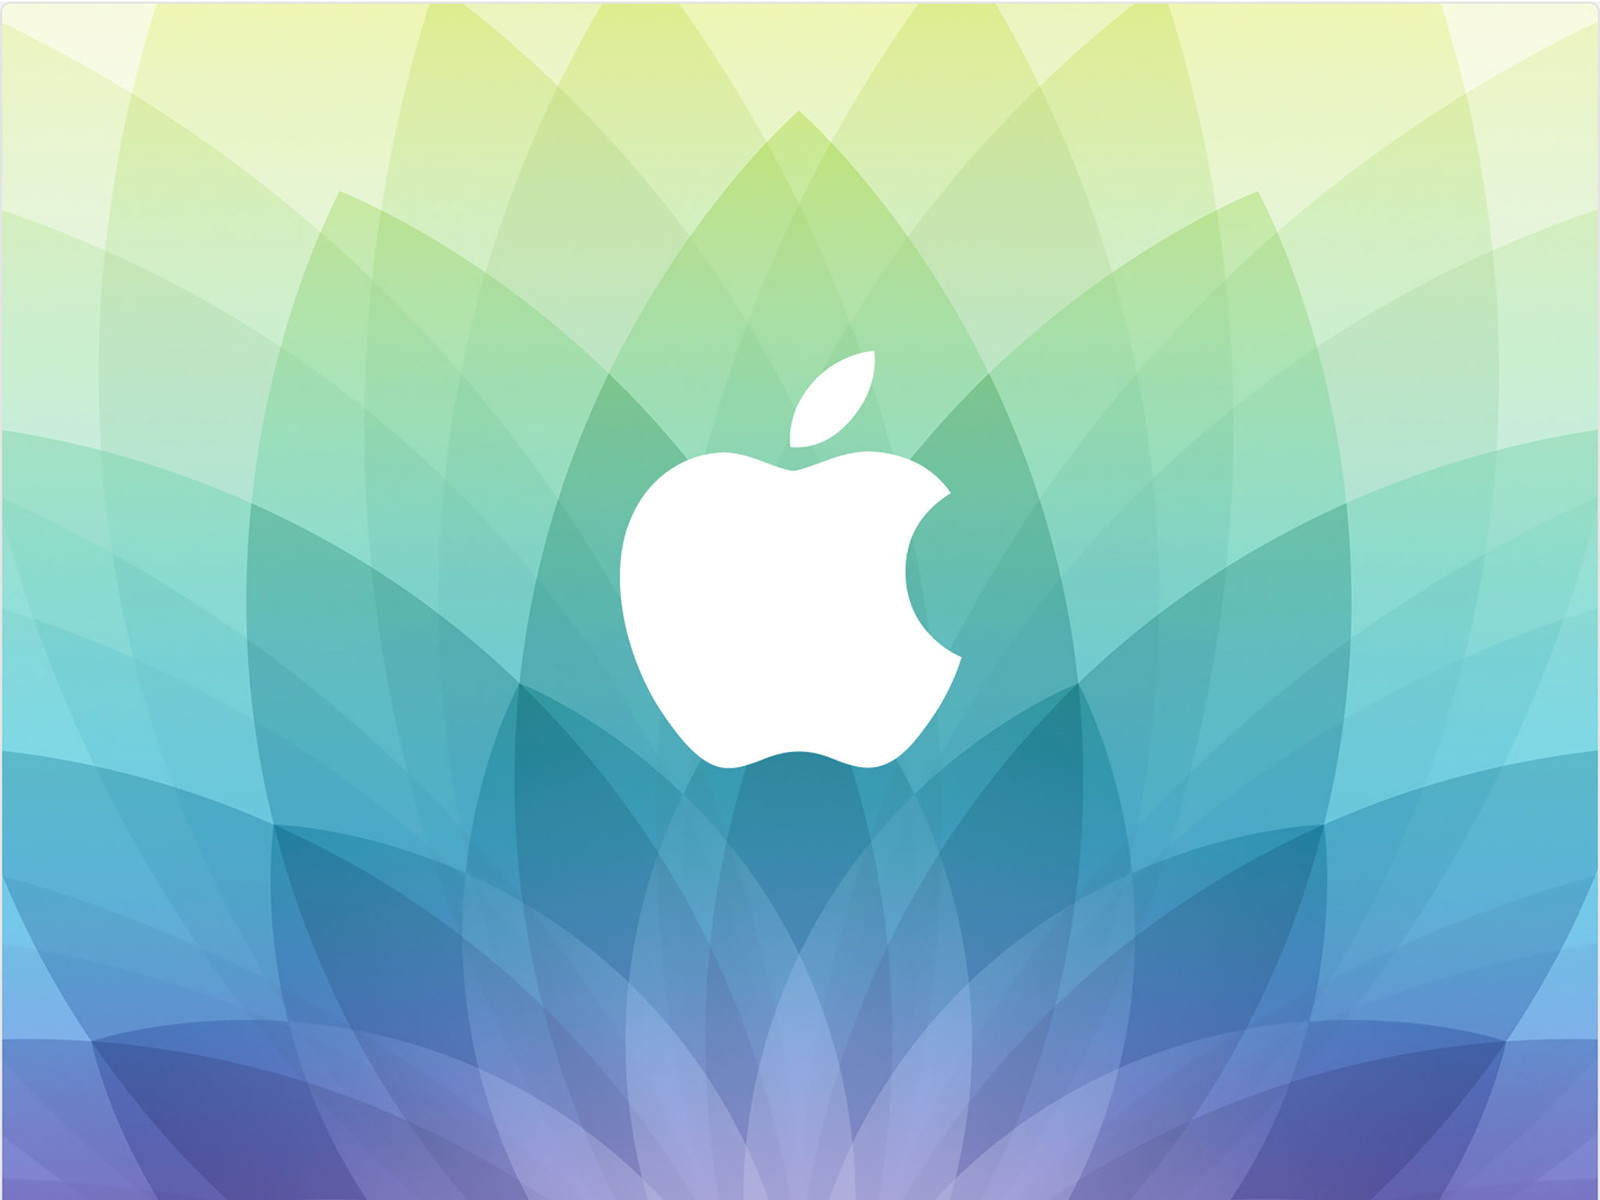 Apple will live stream their 'Spring Forward' special event on March 9